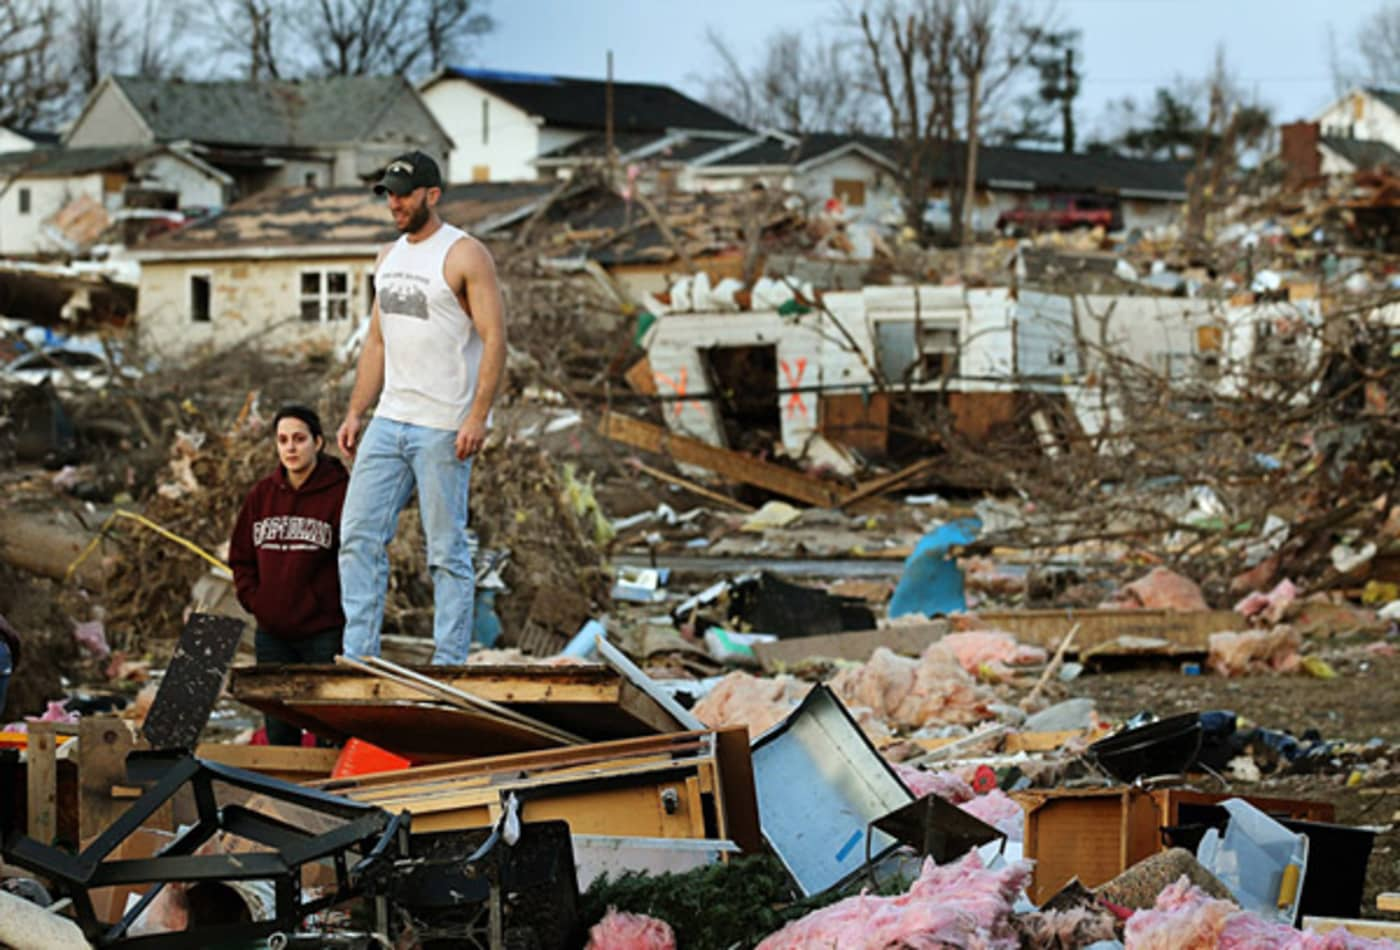 scenes-from-the-midwest-tornadoes-couple.jpg